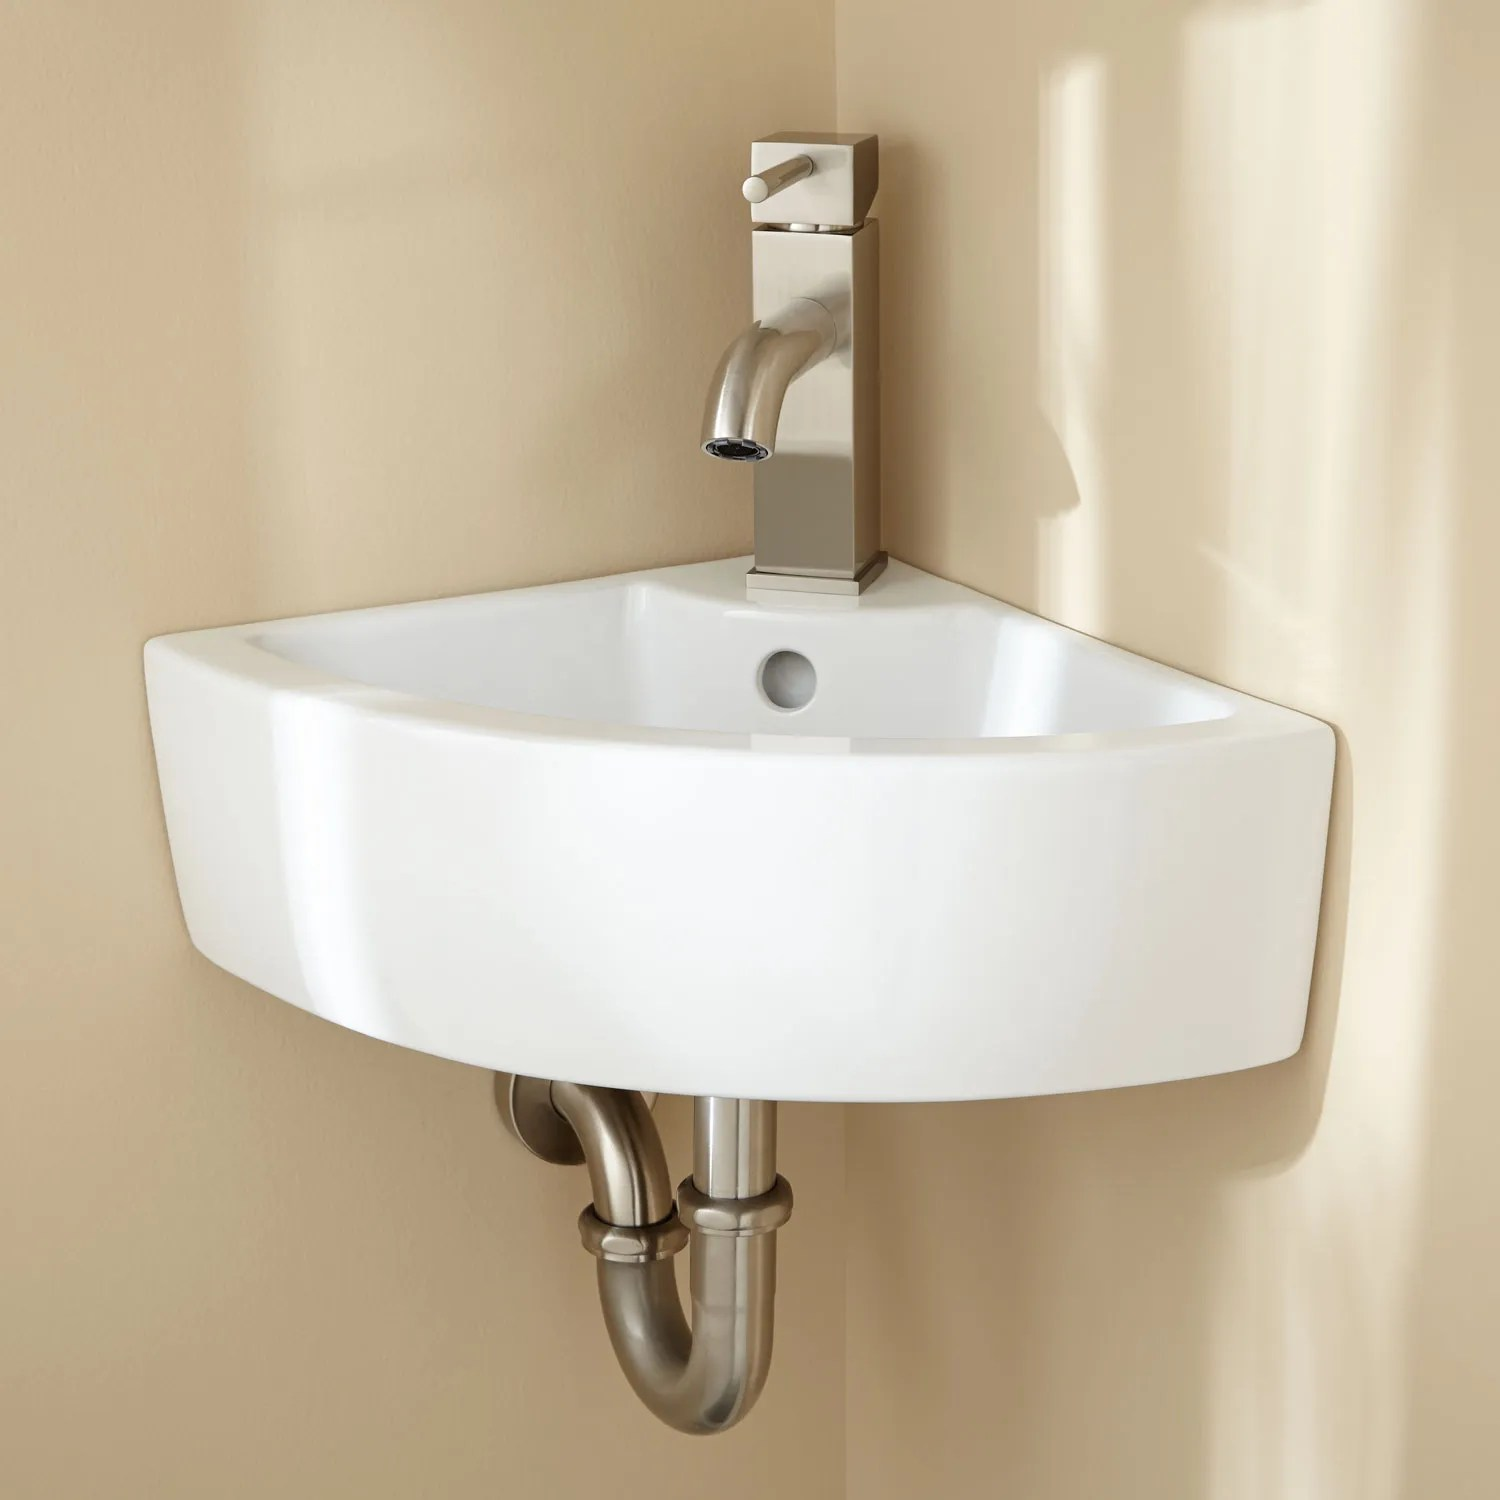 Signature Hardware Amelda Porcelain Wall Mount Corner Bathroom Sink  eBay